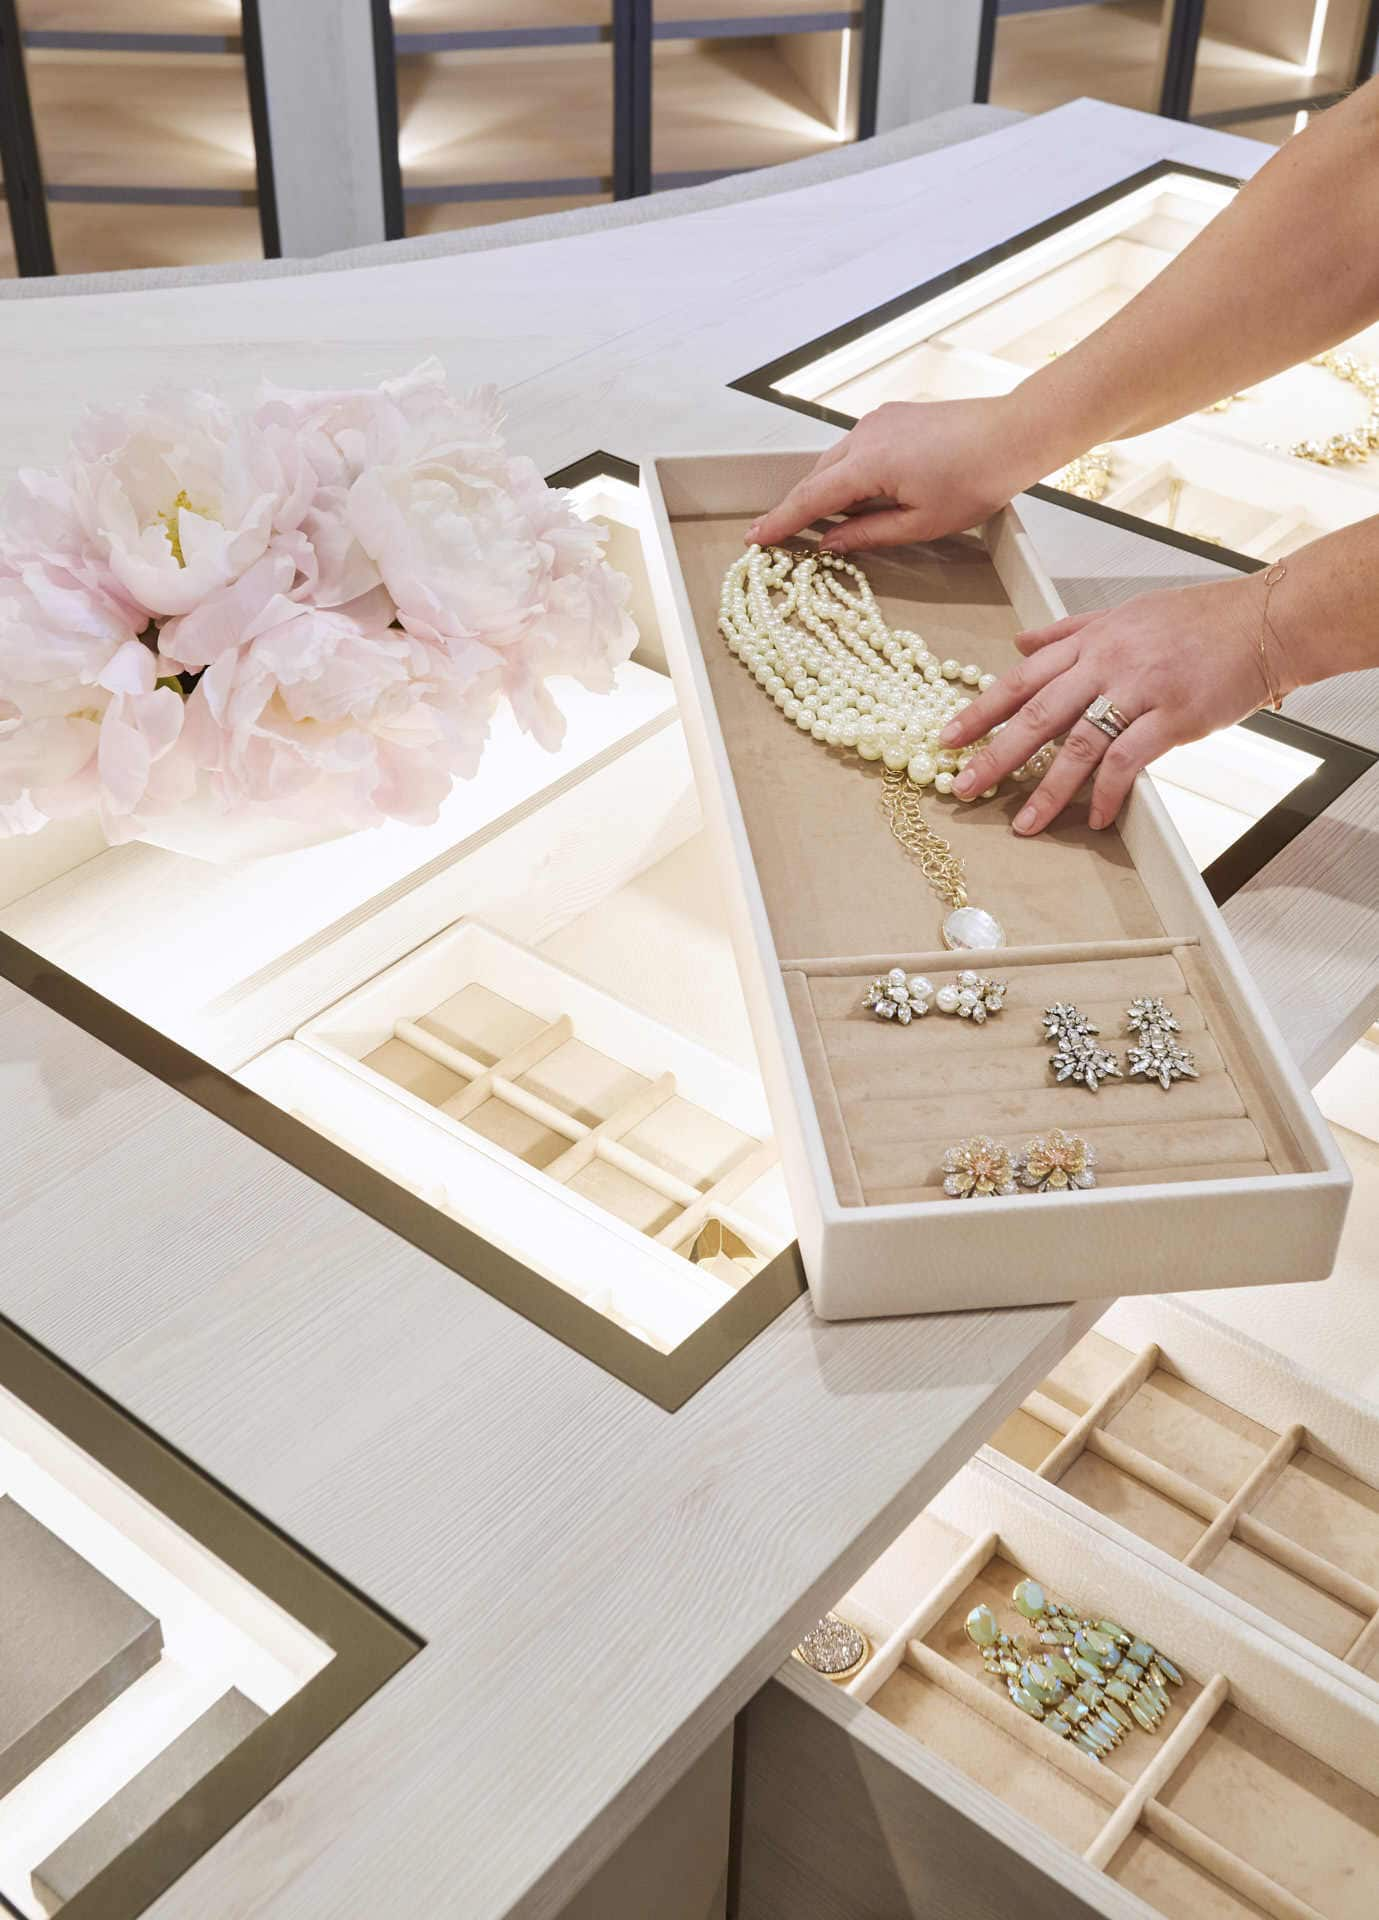 custom drawers and organizers make access to dressing accessories quick and easy